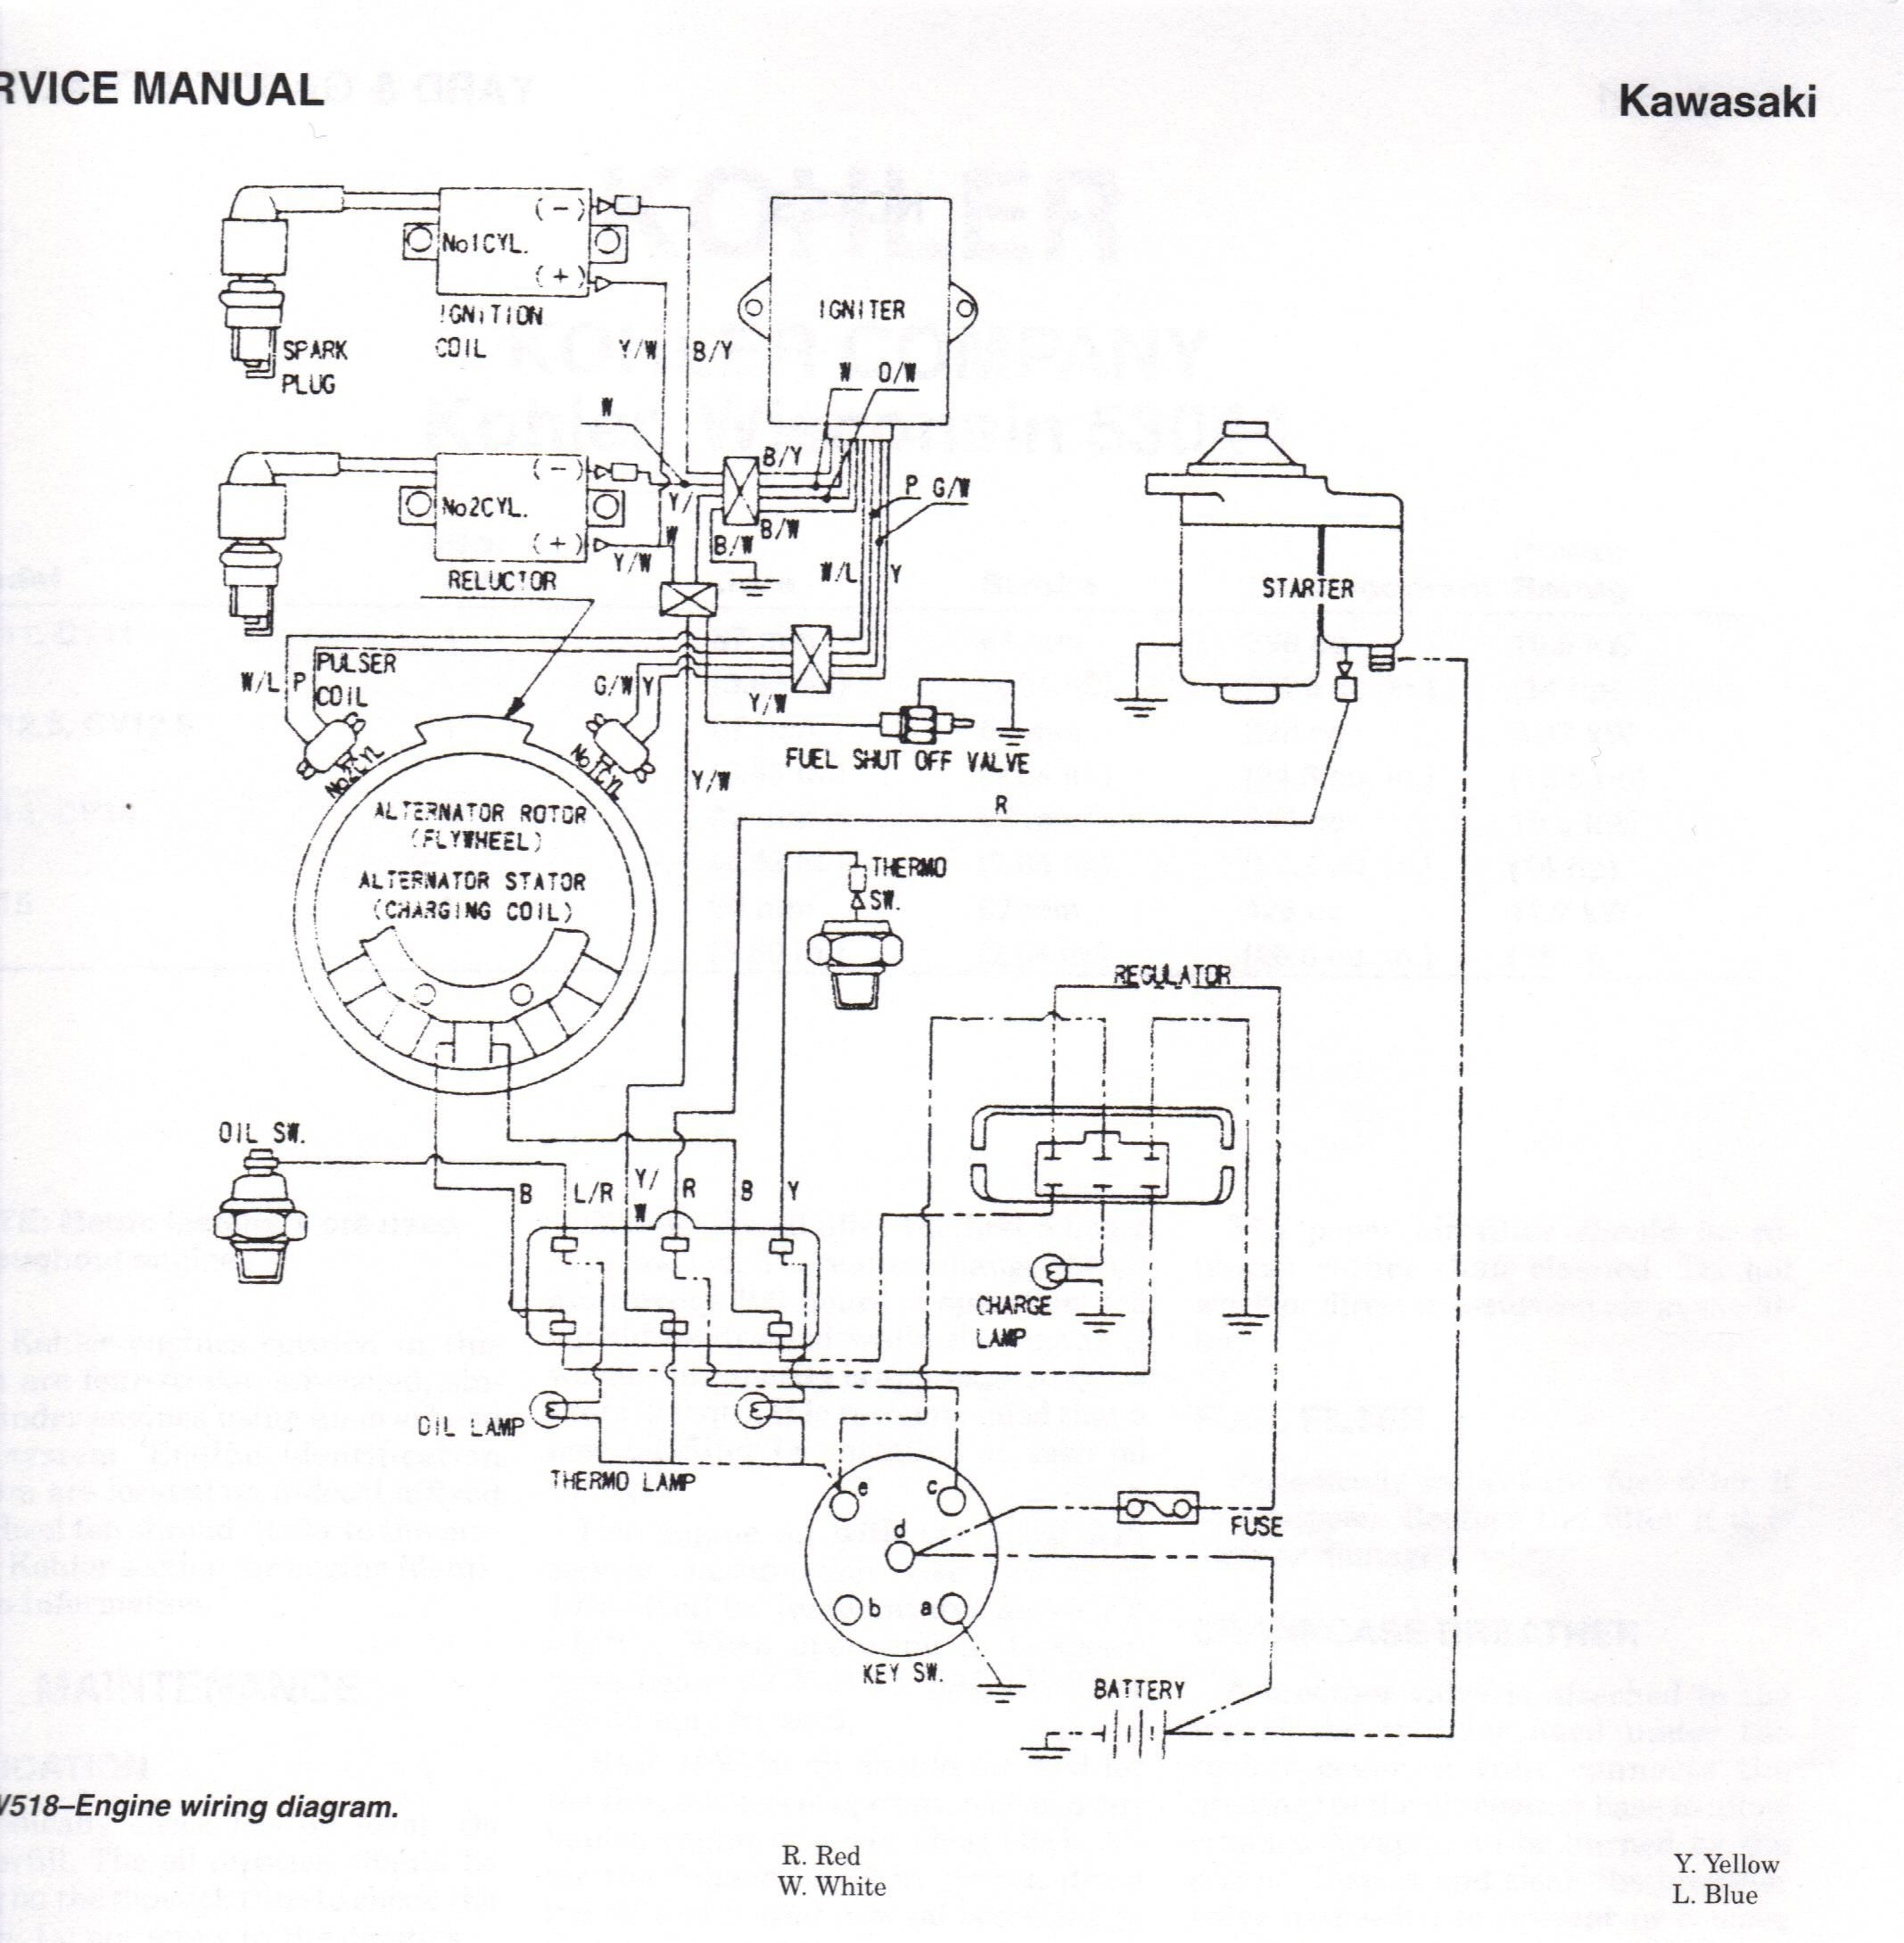 Rectifier Wiring Diagram For John Deere | Wiring Diagram on john deere 322 parts, john deere 322 starter motor, john deere 322 wire, john deere 425 wiring-diagram, john deere m wiring-diagram, john deere 322 sensor, john deere 322 valve, john deere electrical diagrams, john deere 322 manual, john deere 345 wiring-diagram, craftsman riding tractor wiring diagram, john deere 325 wiring-diagram, john deere 4010 wiring-diagram, john deere z225 wiring-diagram, john deere 180 wiring-diagram, john deere 322 radiator, john deere 322 spark plugs, john deere 155c wiring-diagram, john deere 445 wiring-diagram, john deere 455 wiring-diagram,